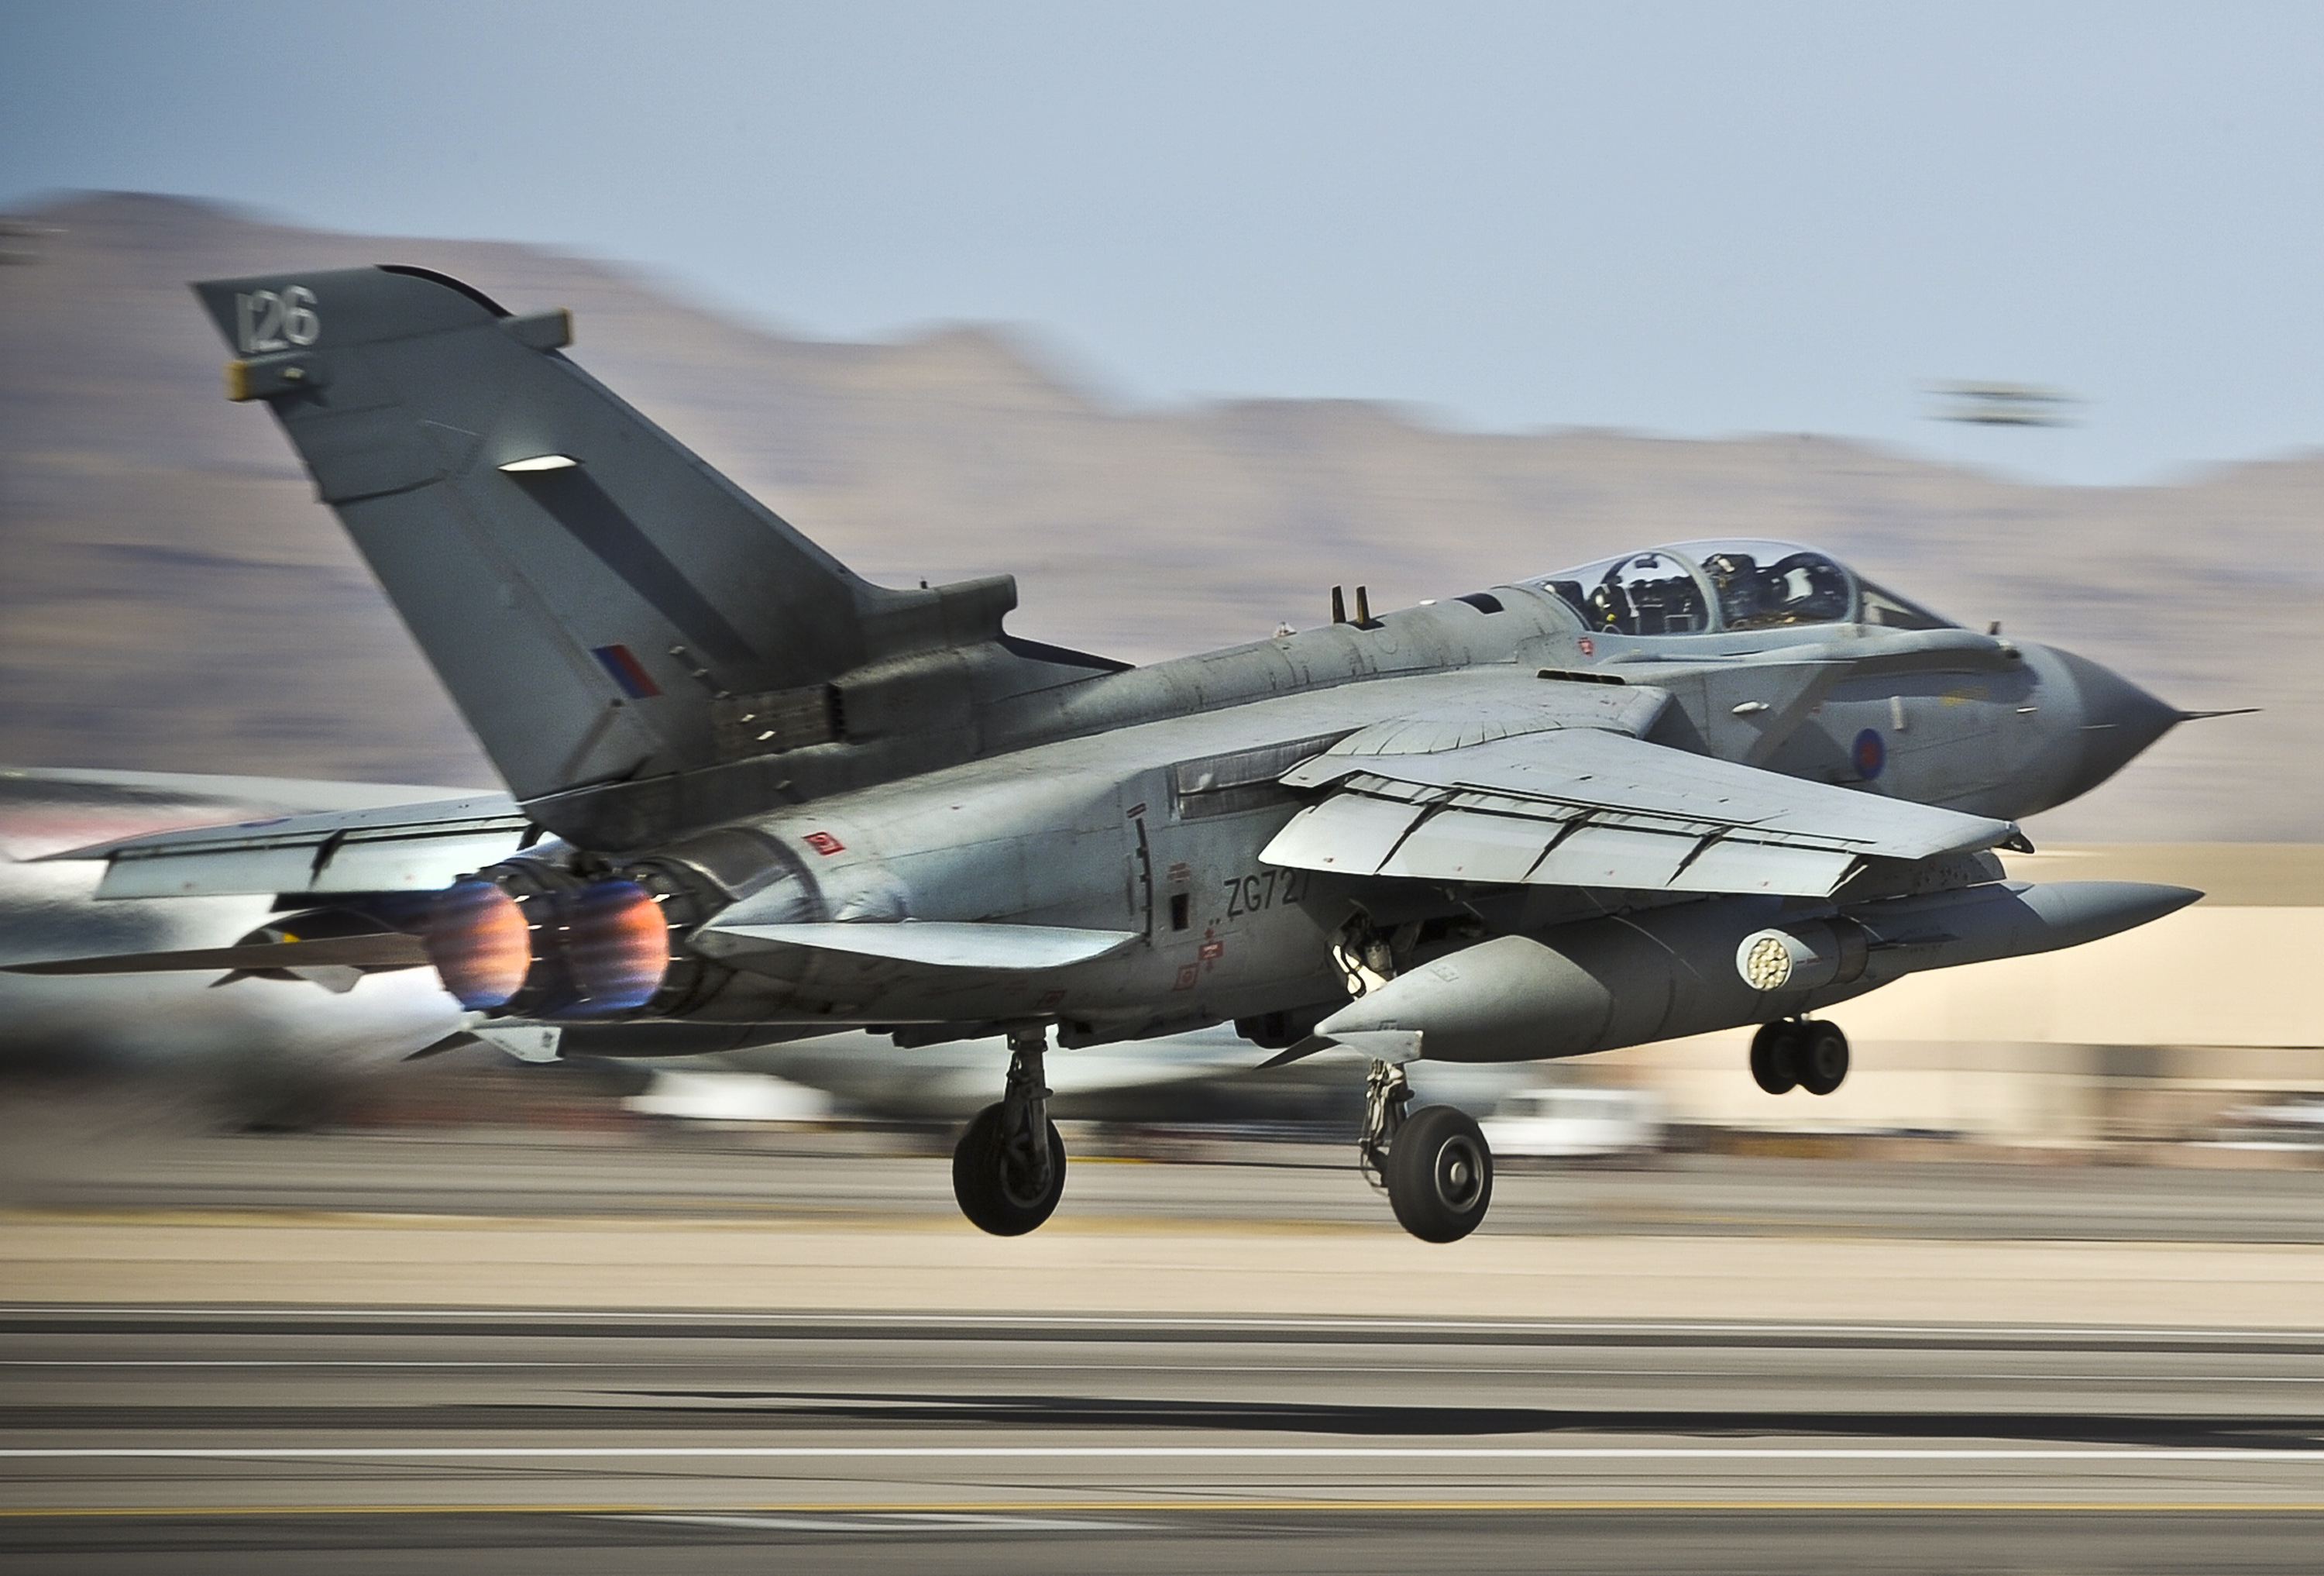 File:RAF Typhoon Jet Taking Off During Ex Red Flag in the ...